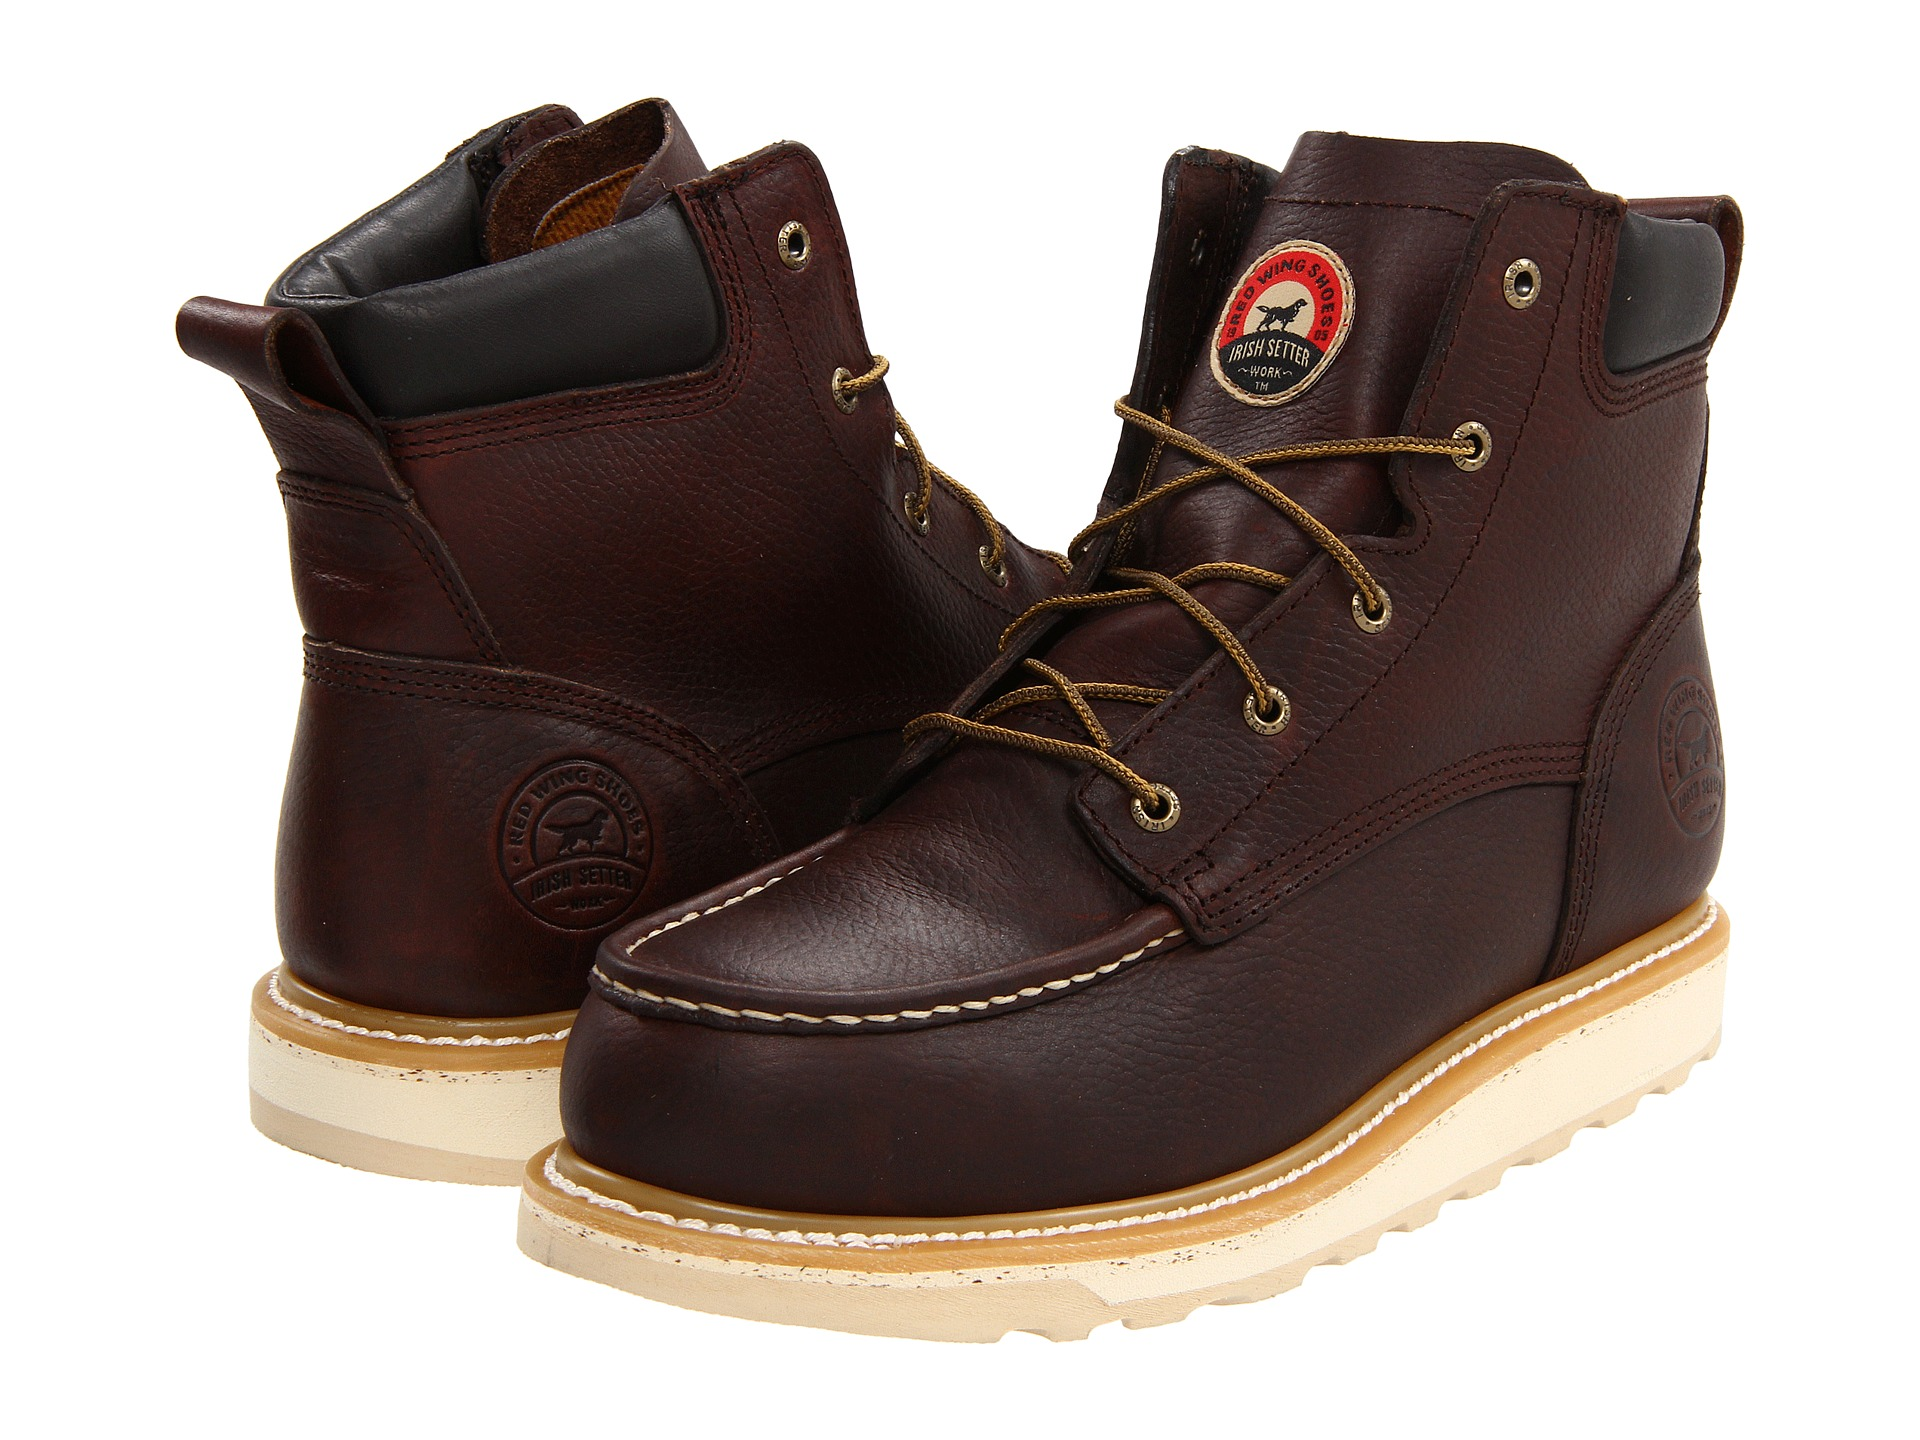 Red Wing Boots Store Hours Tsaa Heel